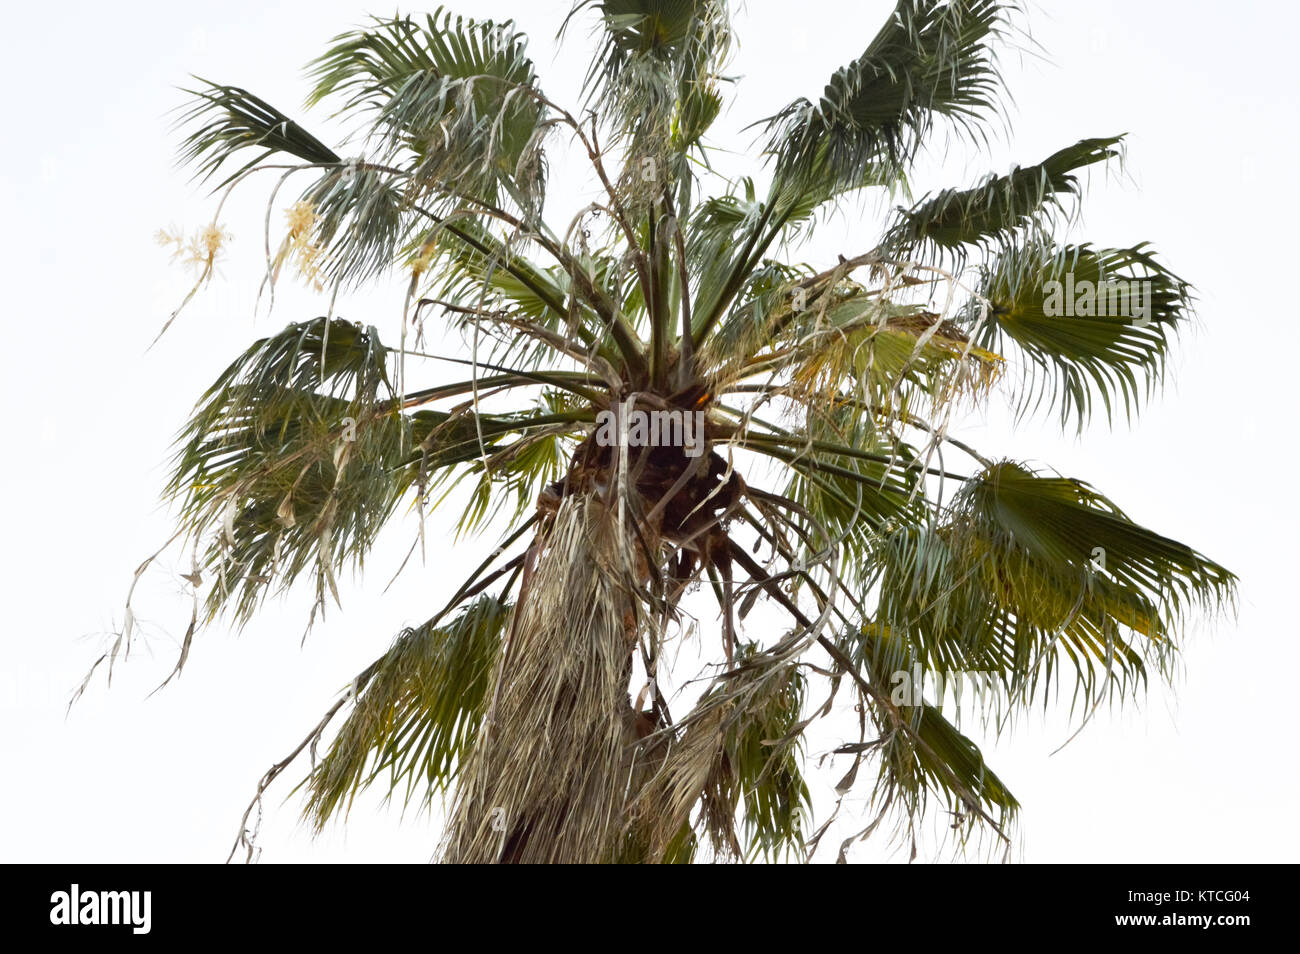 Waving Palm Branches Stock Photos & Waving Palm Branches ...